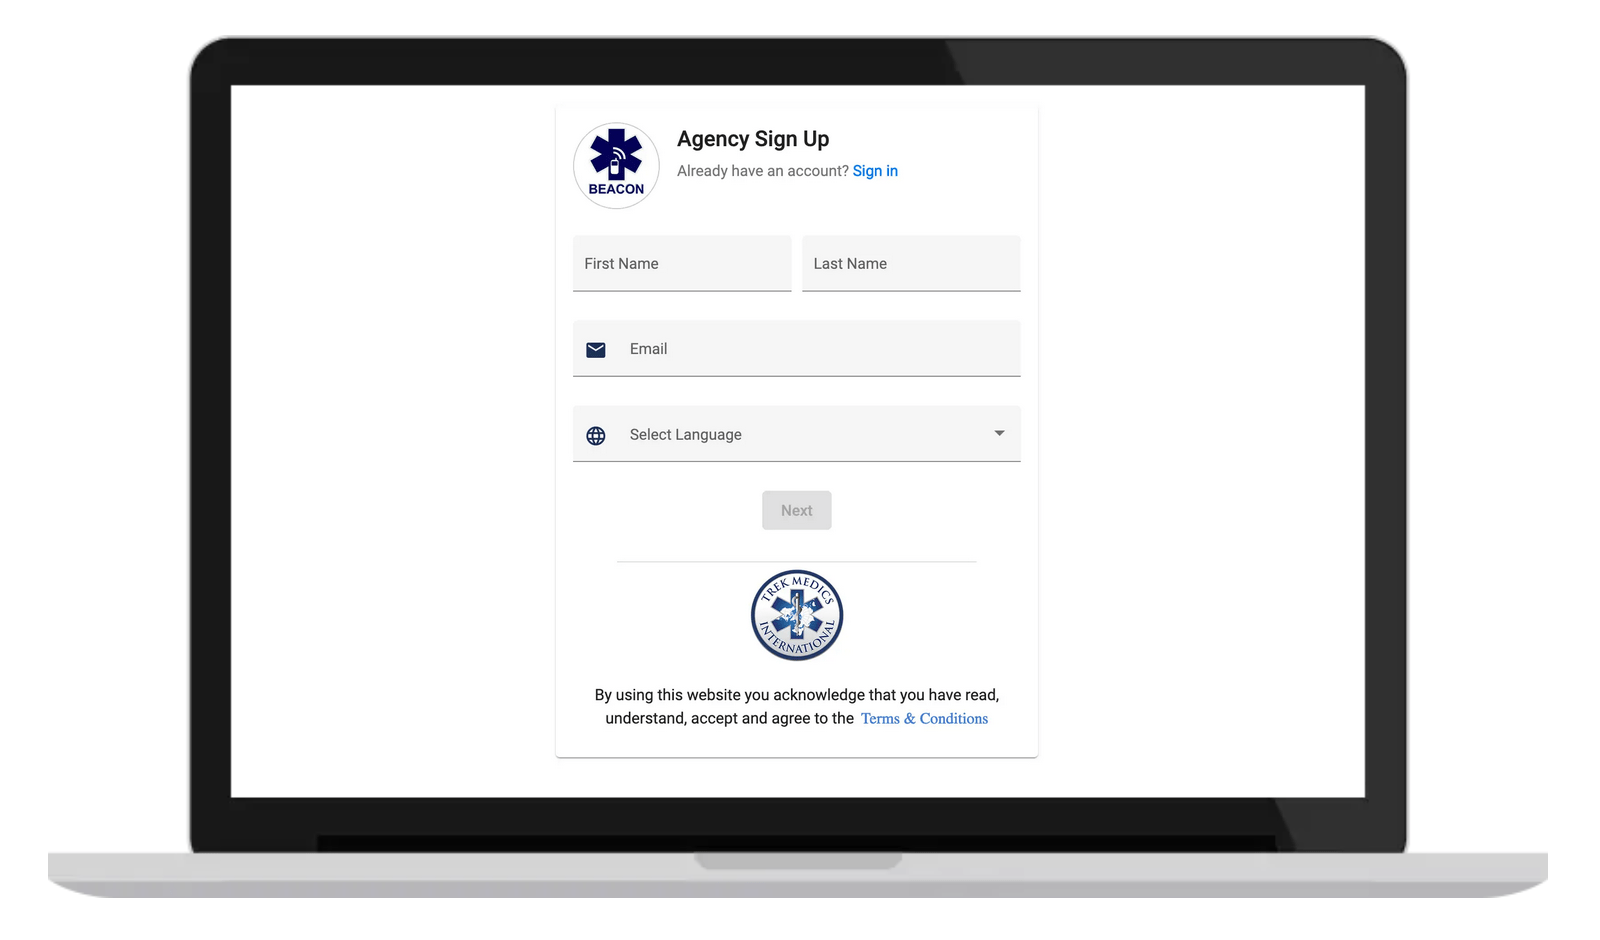 Laptop - Agency Account Sign Up Page - Beacon Emergency Dispatch Platform v5.0